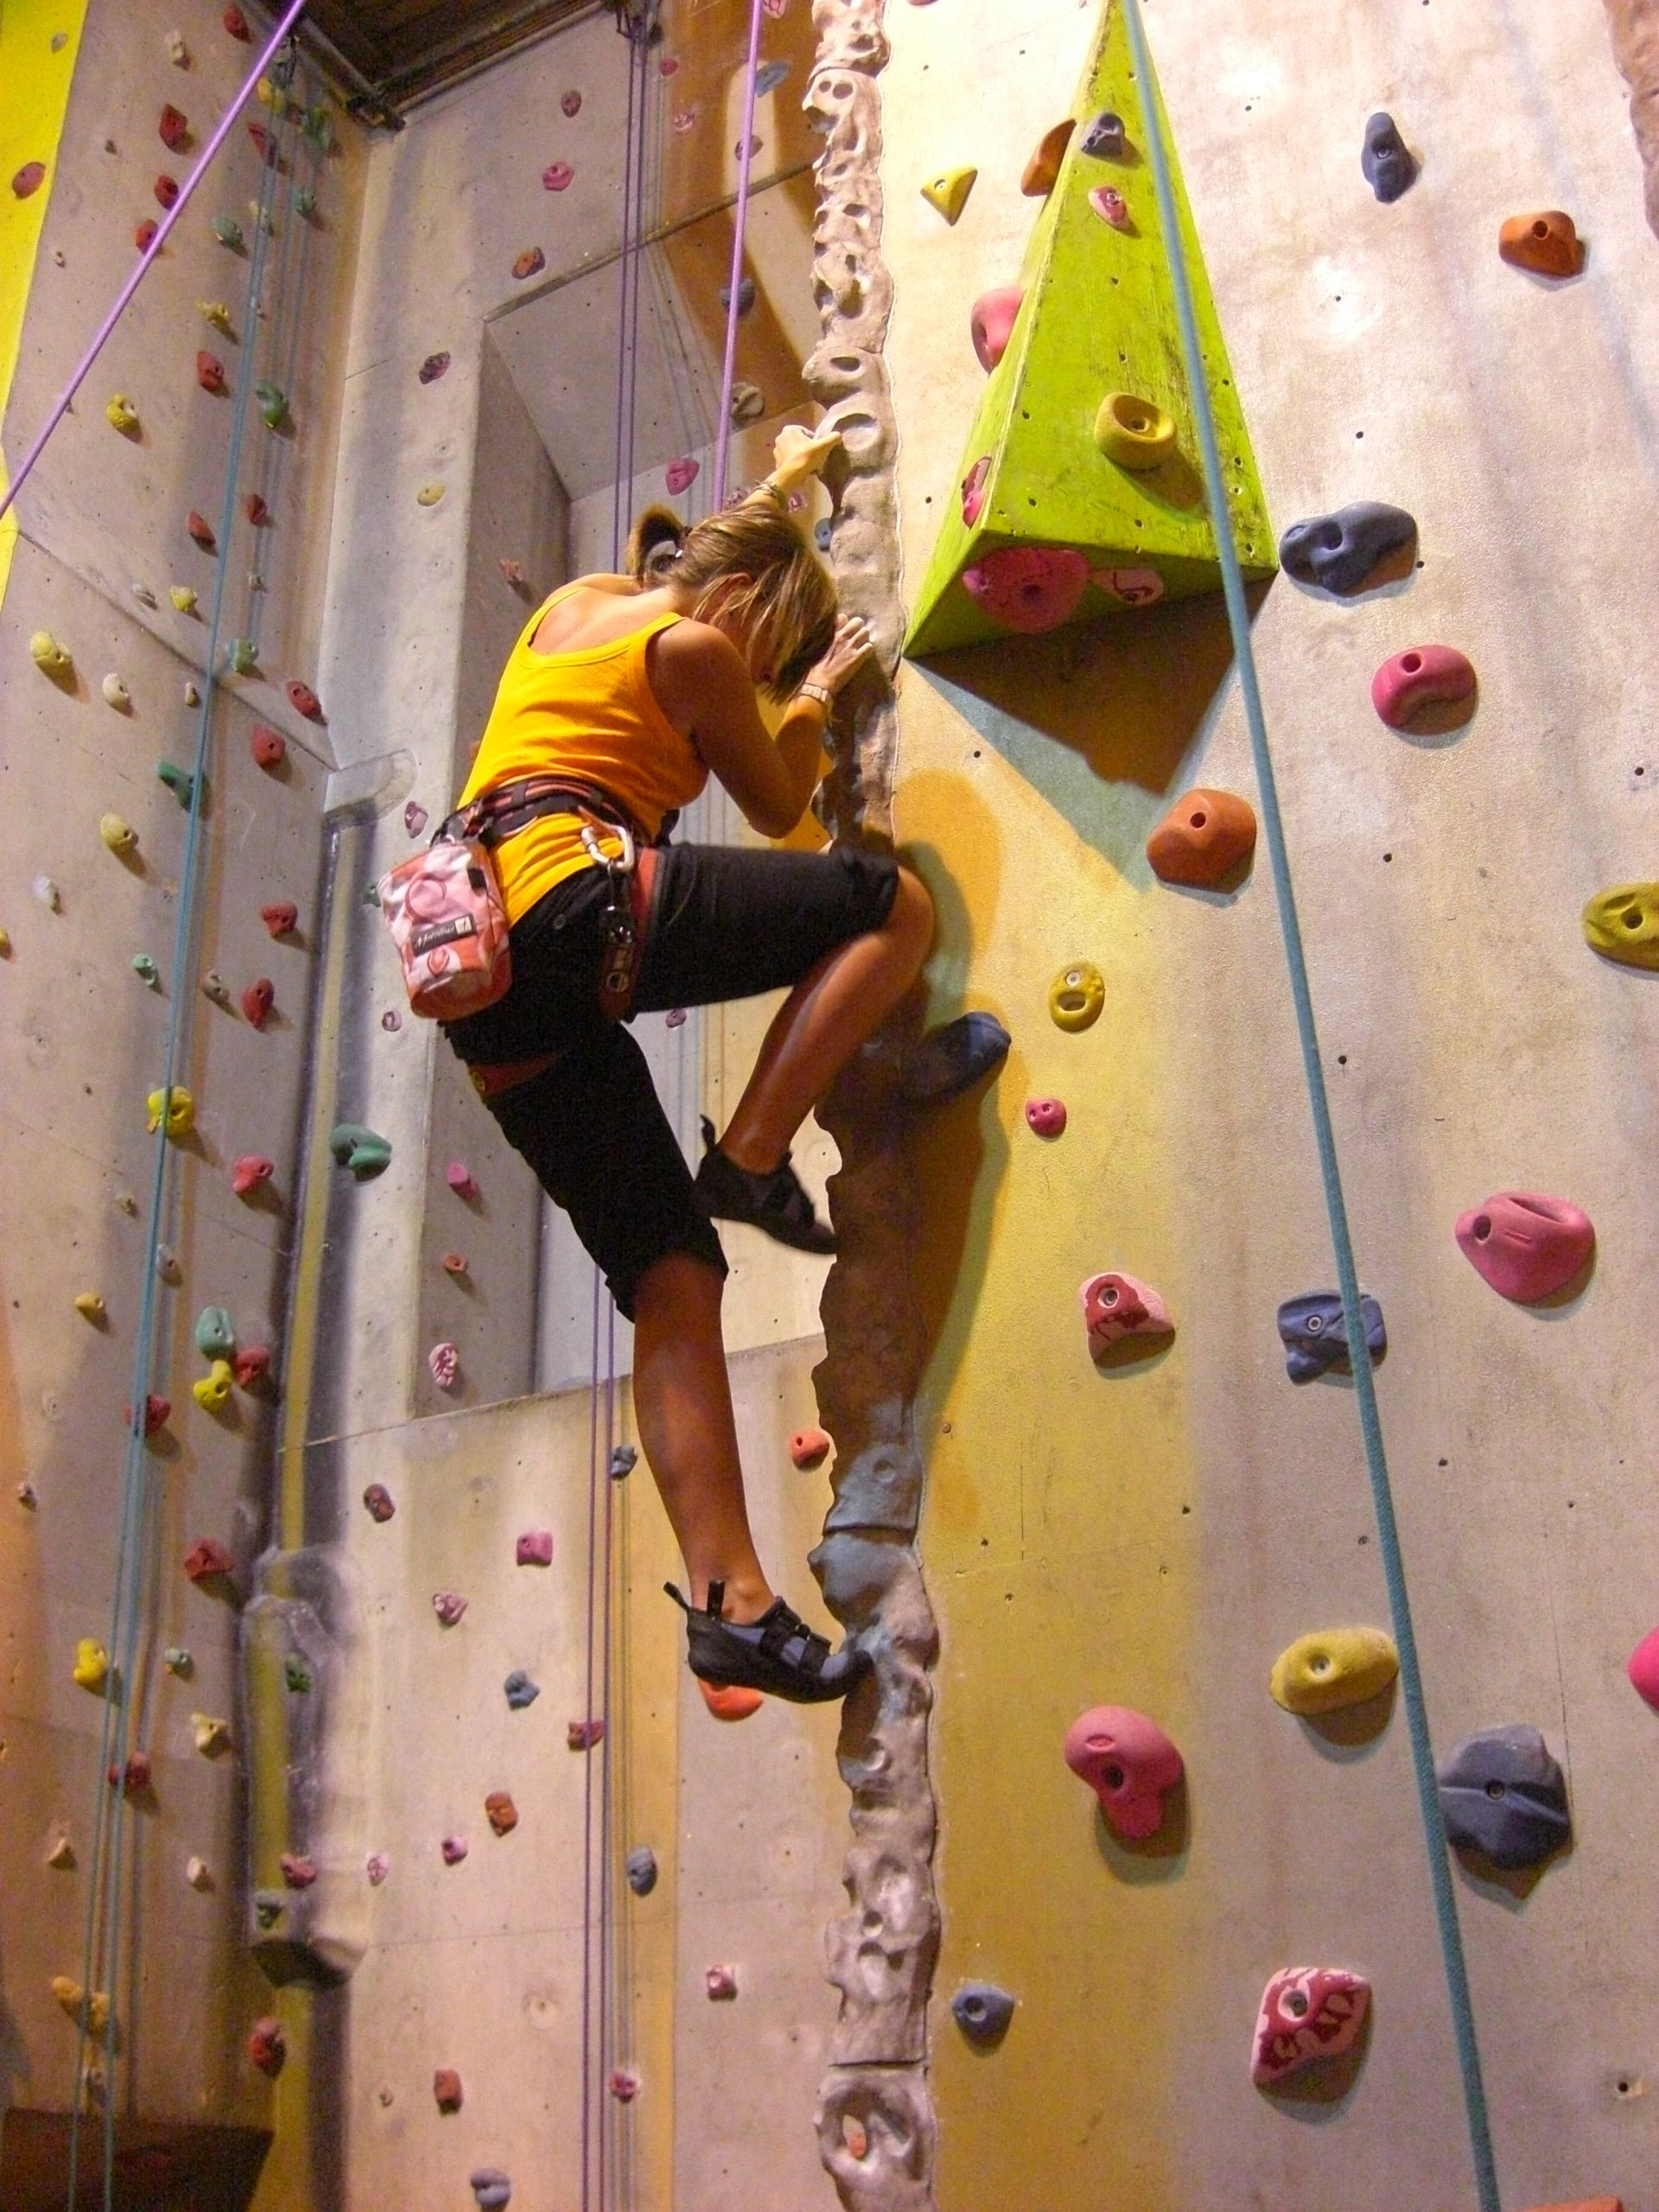 It's possible ... for me to rock climb (indoors of course). I ...